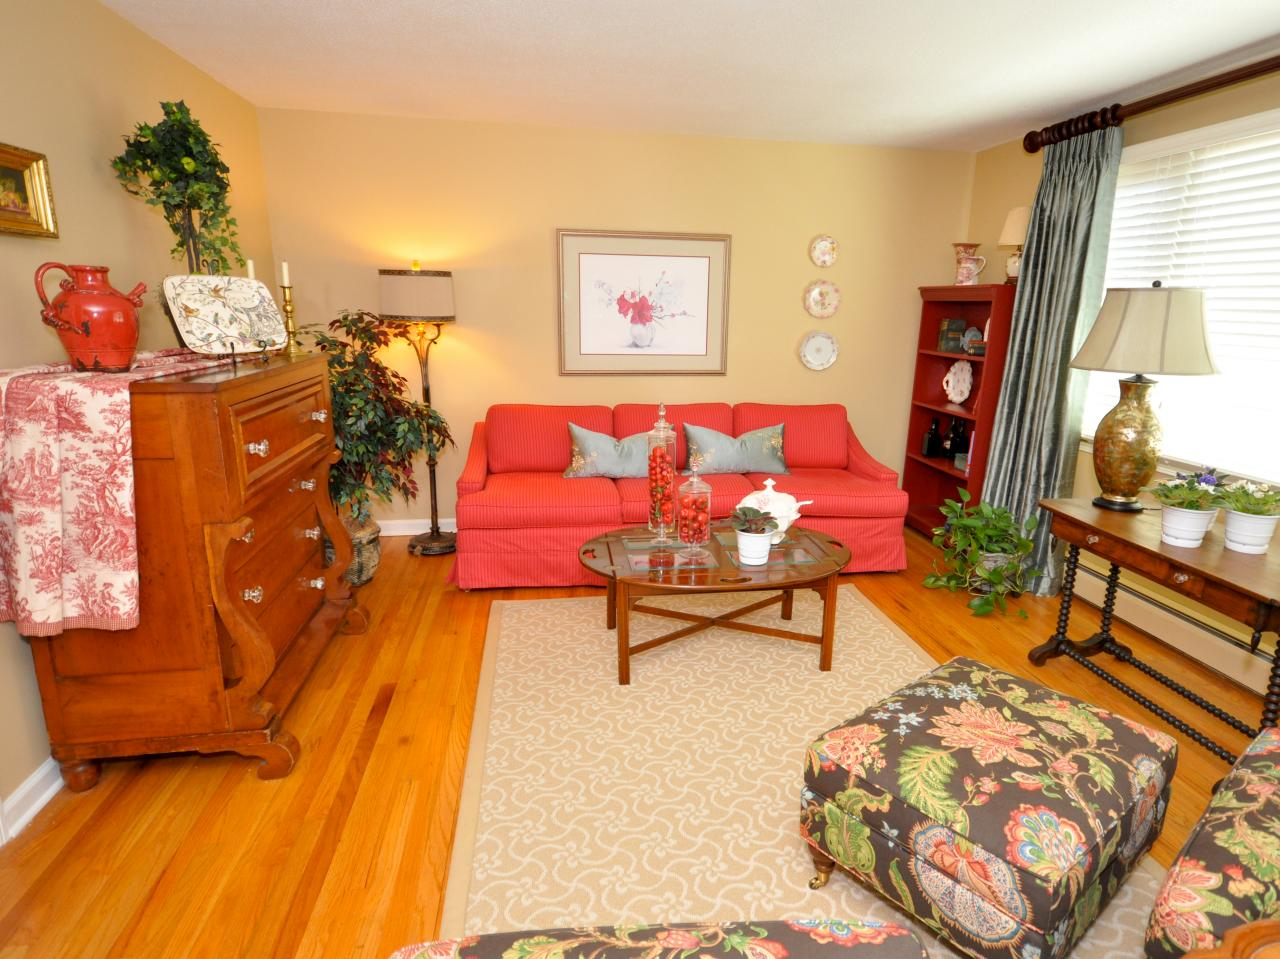 Red Living Room: Living Room With Red Sofa And Hardwood Floors